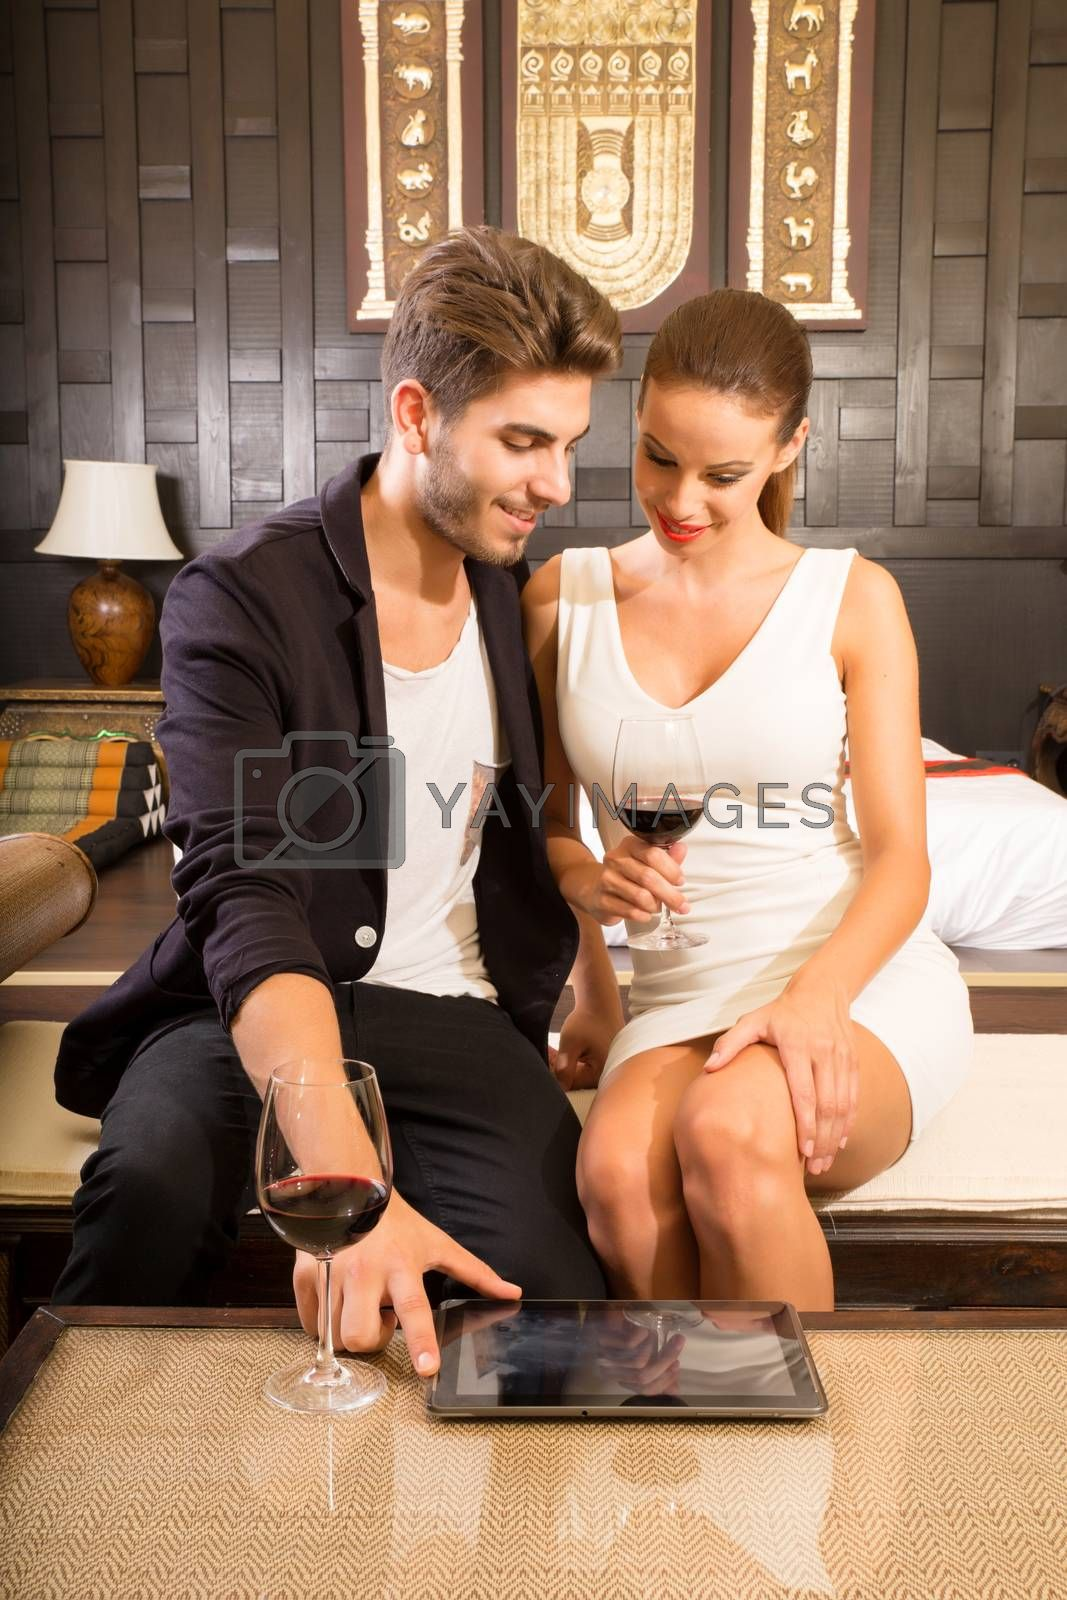 A young and happy couple enjoying a glass of wine in a asian style hotel room while using a tablet.